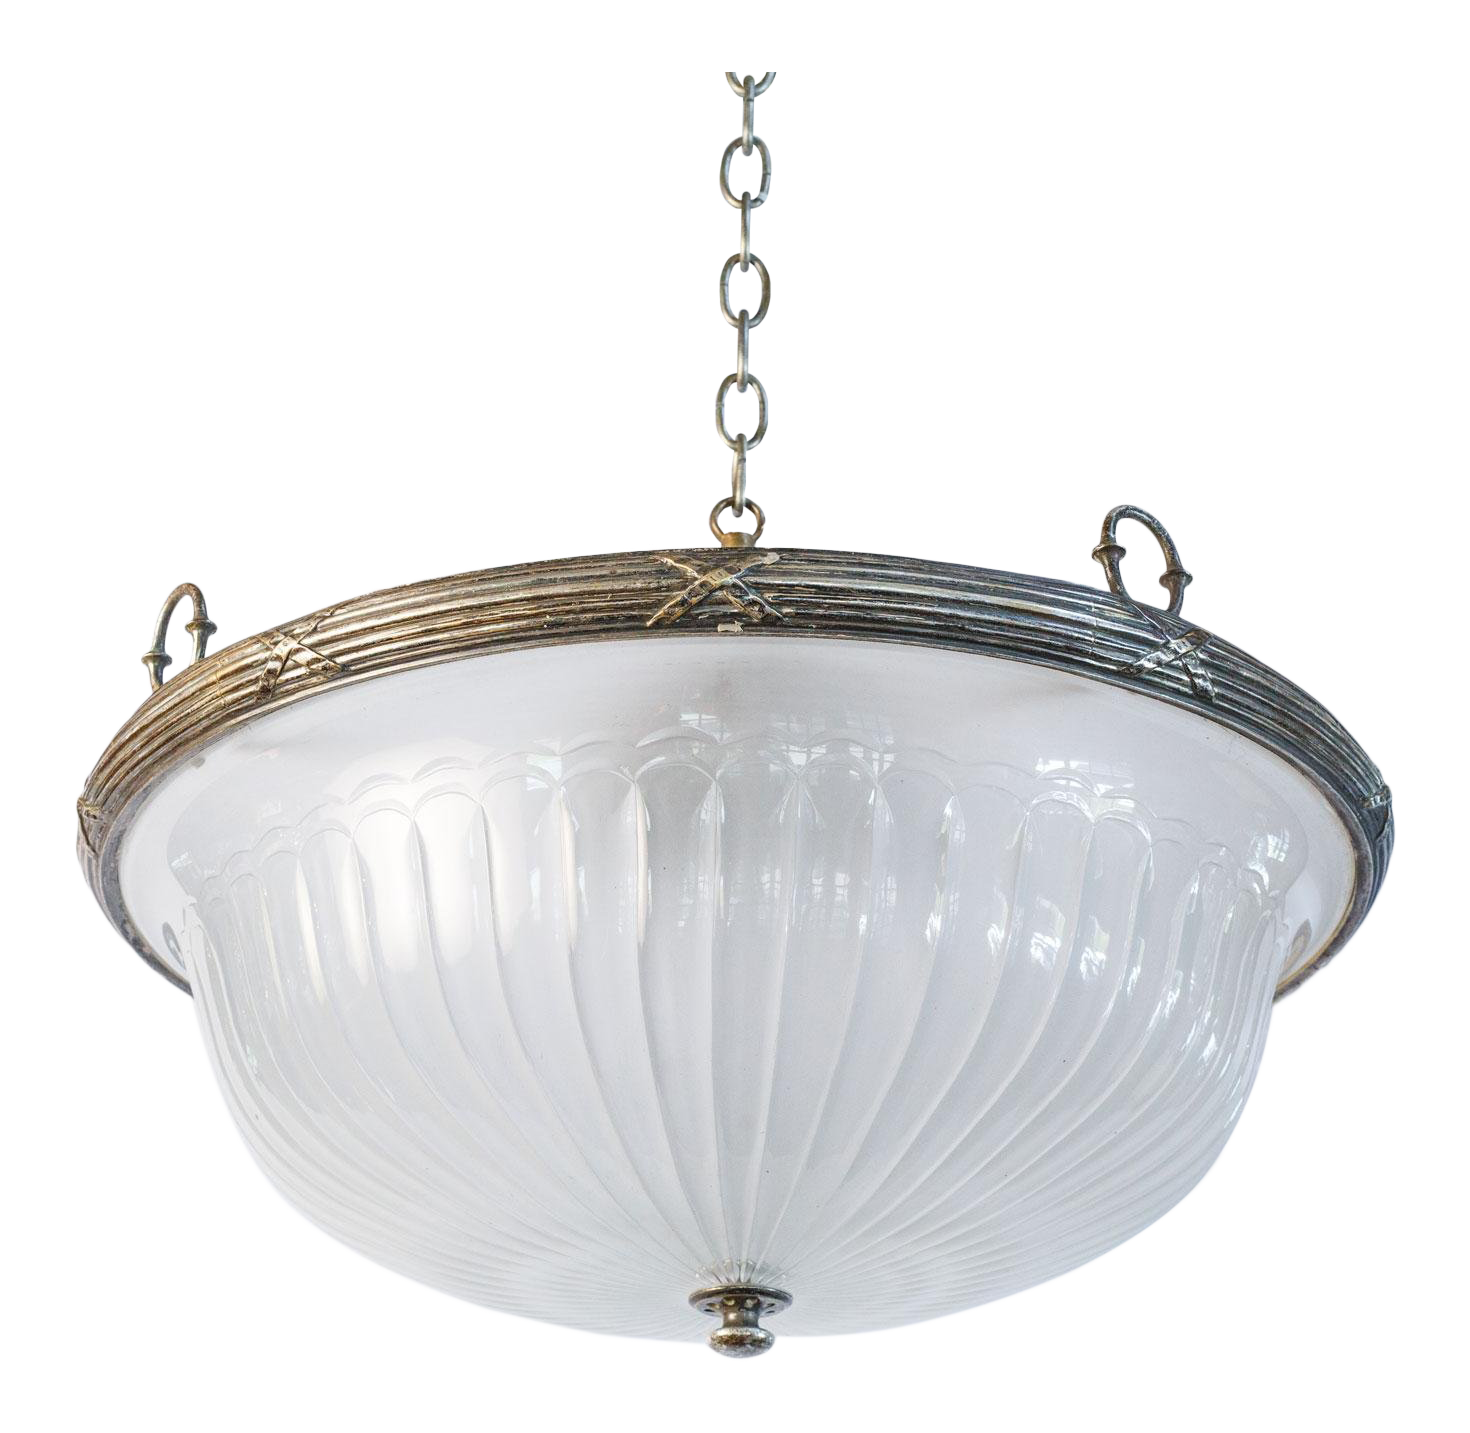 Neoclassical lighting Neoclassical Chandelier Classic Glass And Silver Plated Pendant For Sale Chairish Antique Designer Neoclassical Lighting Decaso